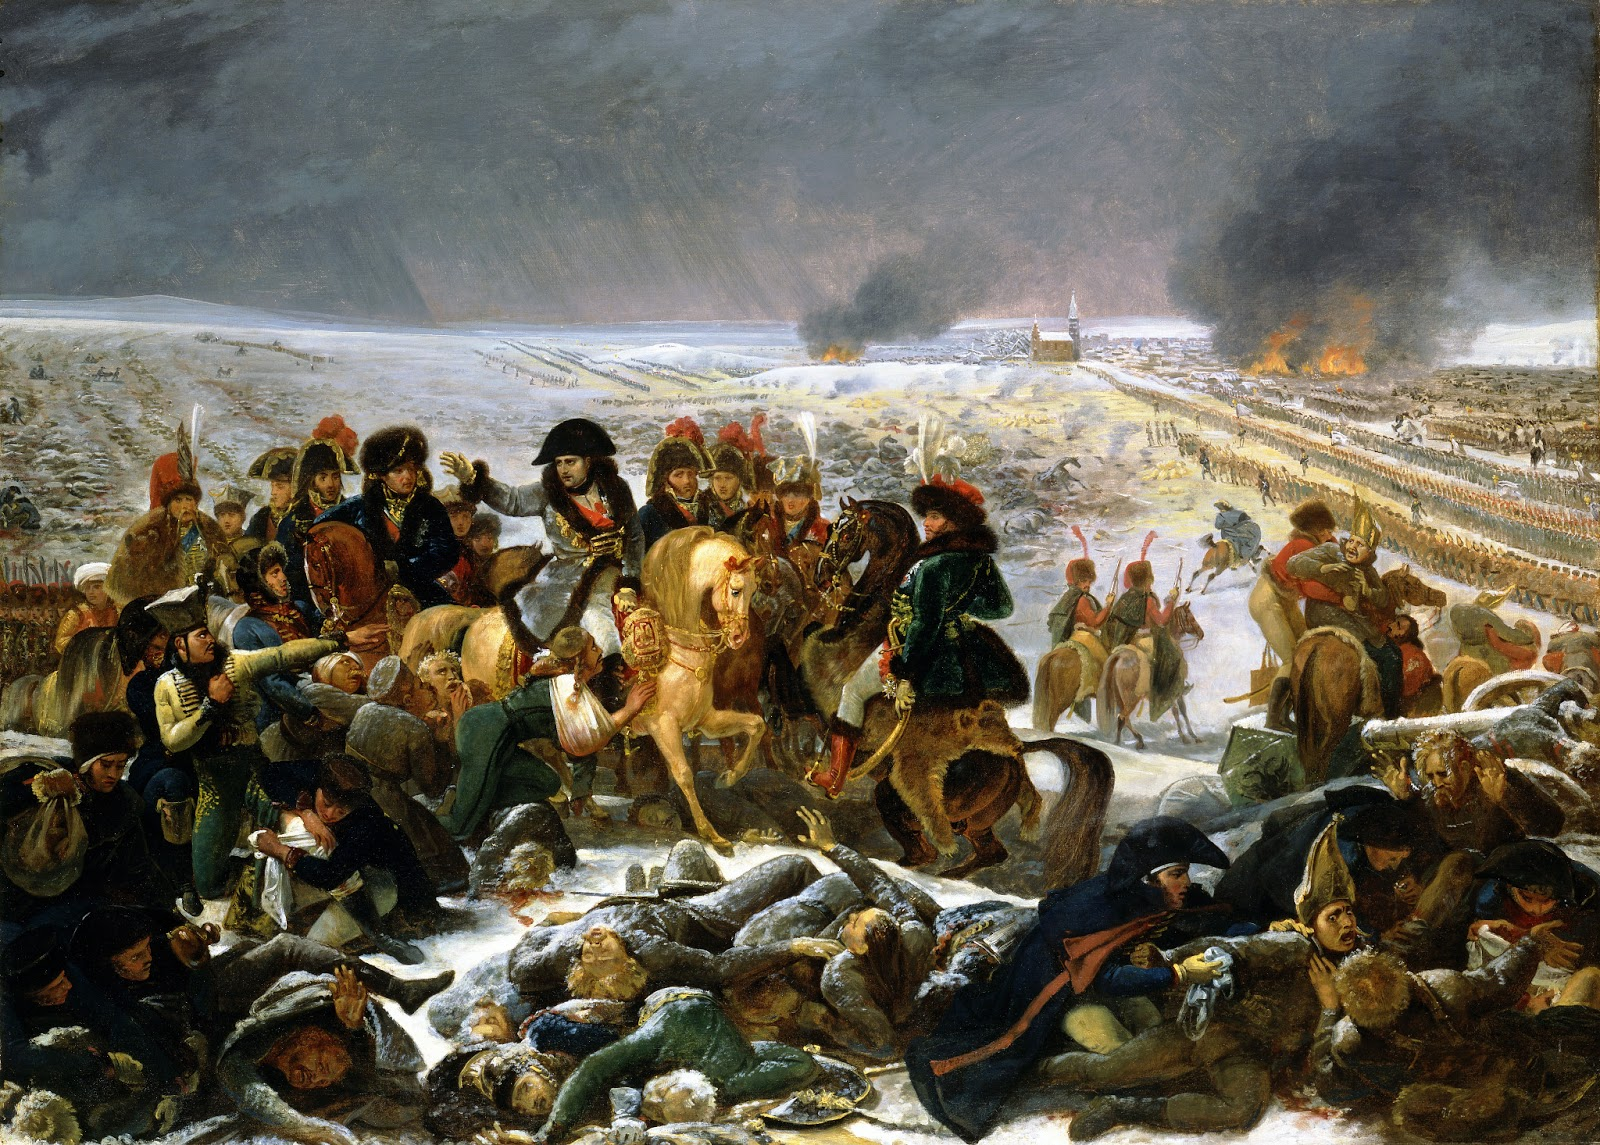 Antoine-Jean_Gros_-_Napoleon_on_the_Battlefield_of_Eylau_-1807+wiki.jpg